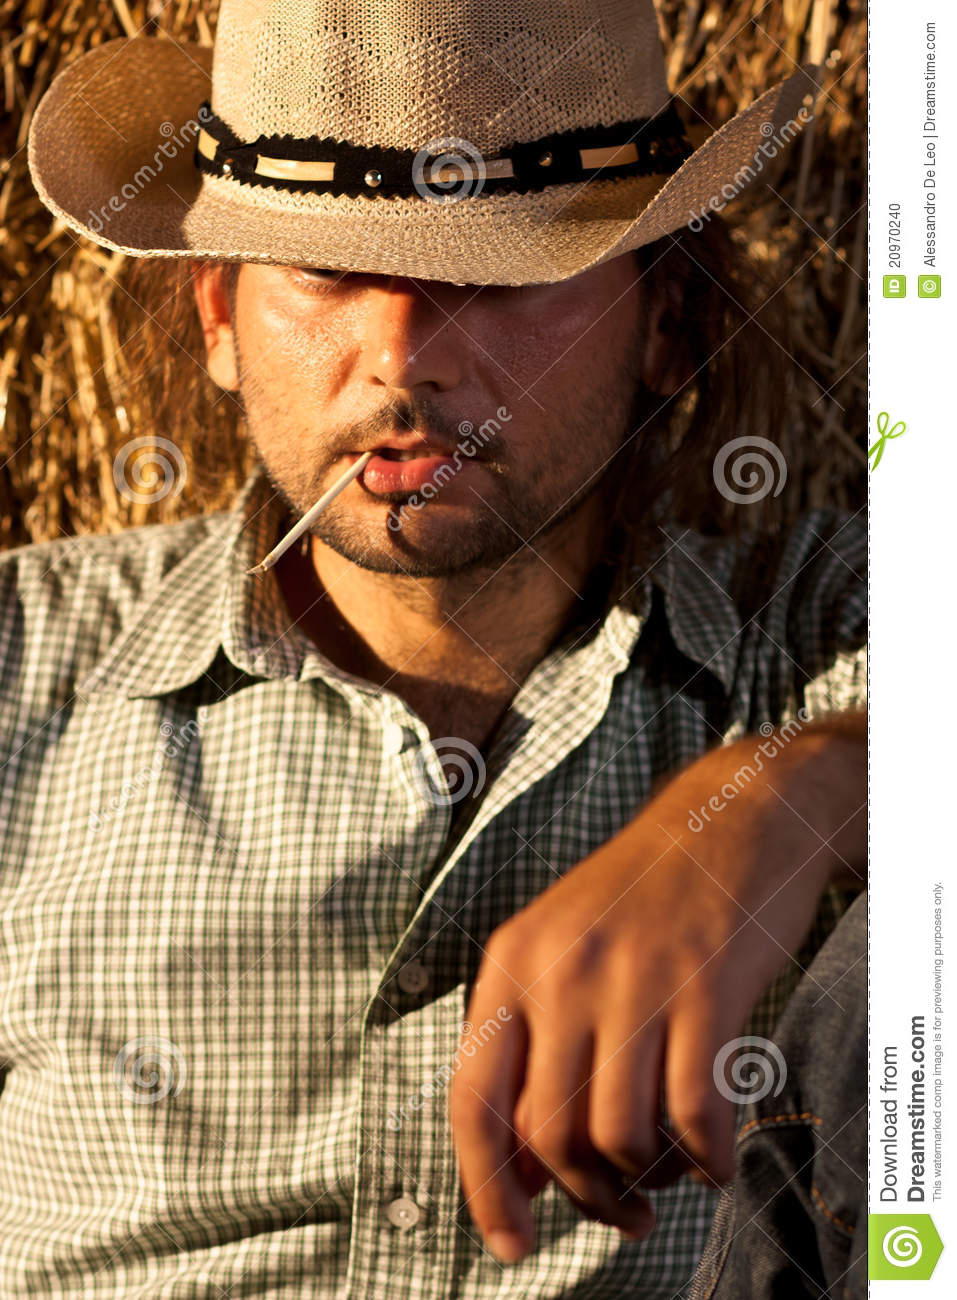 Cowboy with Straw in His Mouth